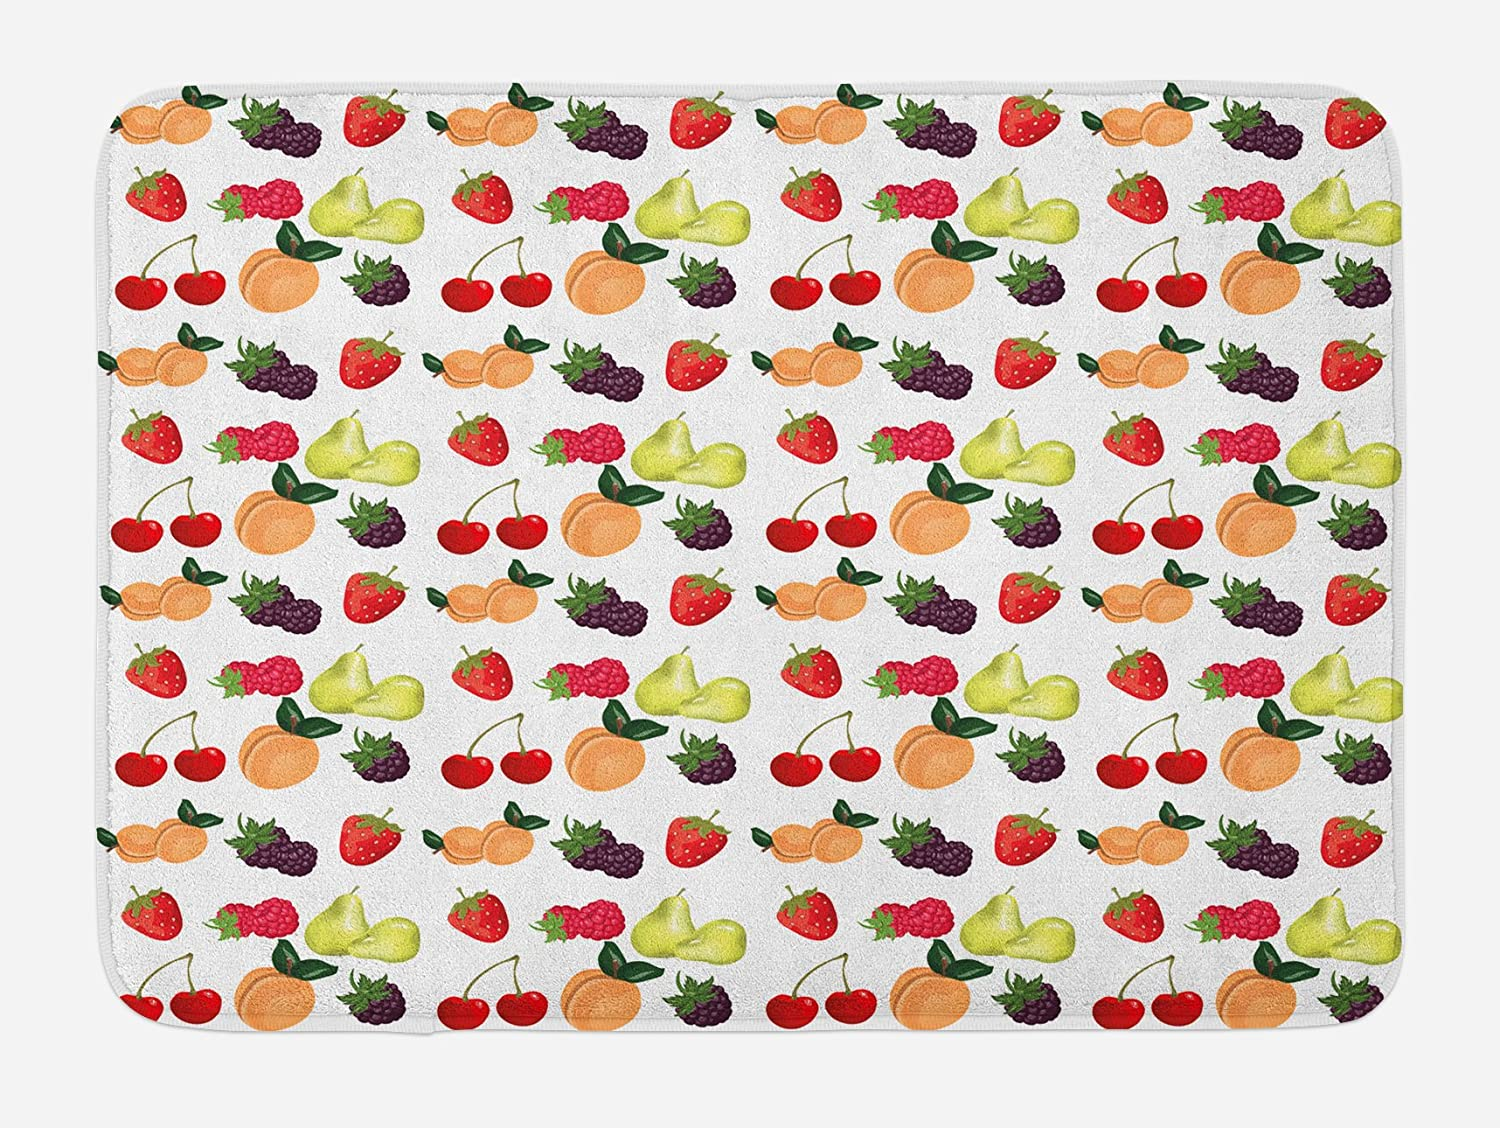 Kitchen Bath Mat Cherry Fruit Pattern Non-Slip Plush Mat 29.5 X 17.5 Inches